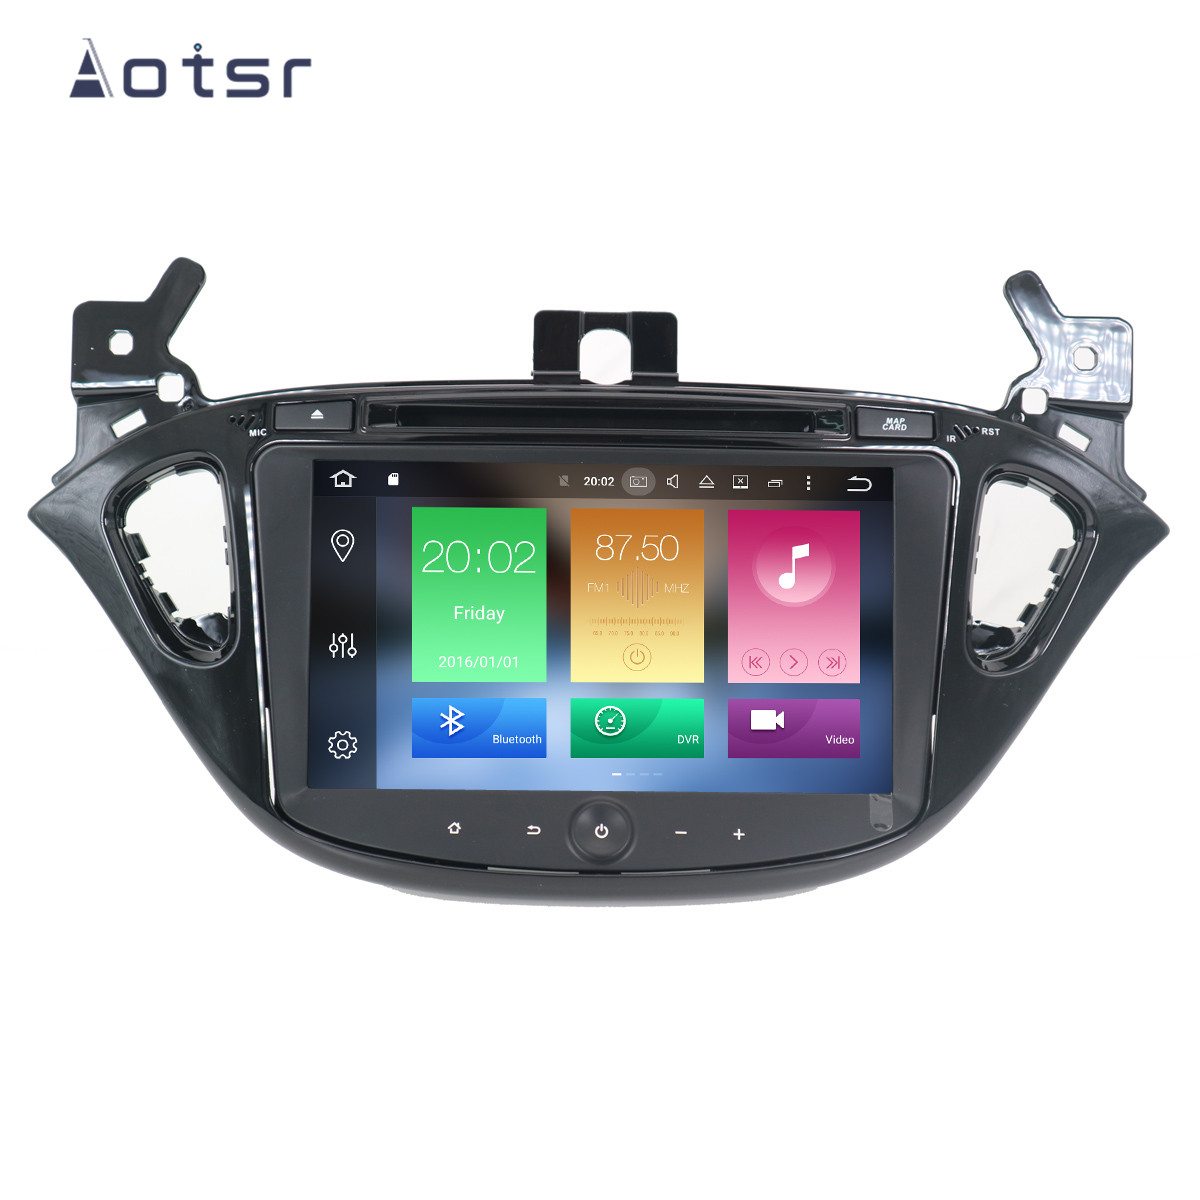 Android 9.0 4+32G Car DVD Player GPS navigation For <font><b>Opel</b></font> <font><b>CORSA</b></font> <font><b>2014</b></font> 2015 2016 headunit multimedia player tape recorder Free Map image